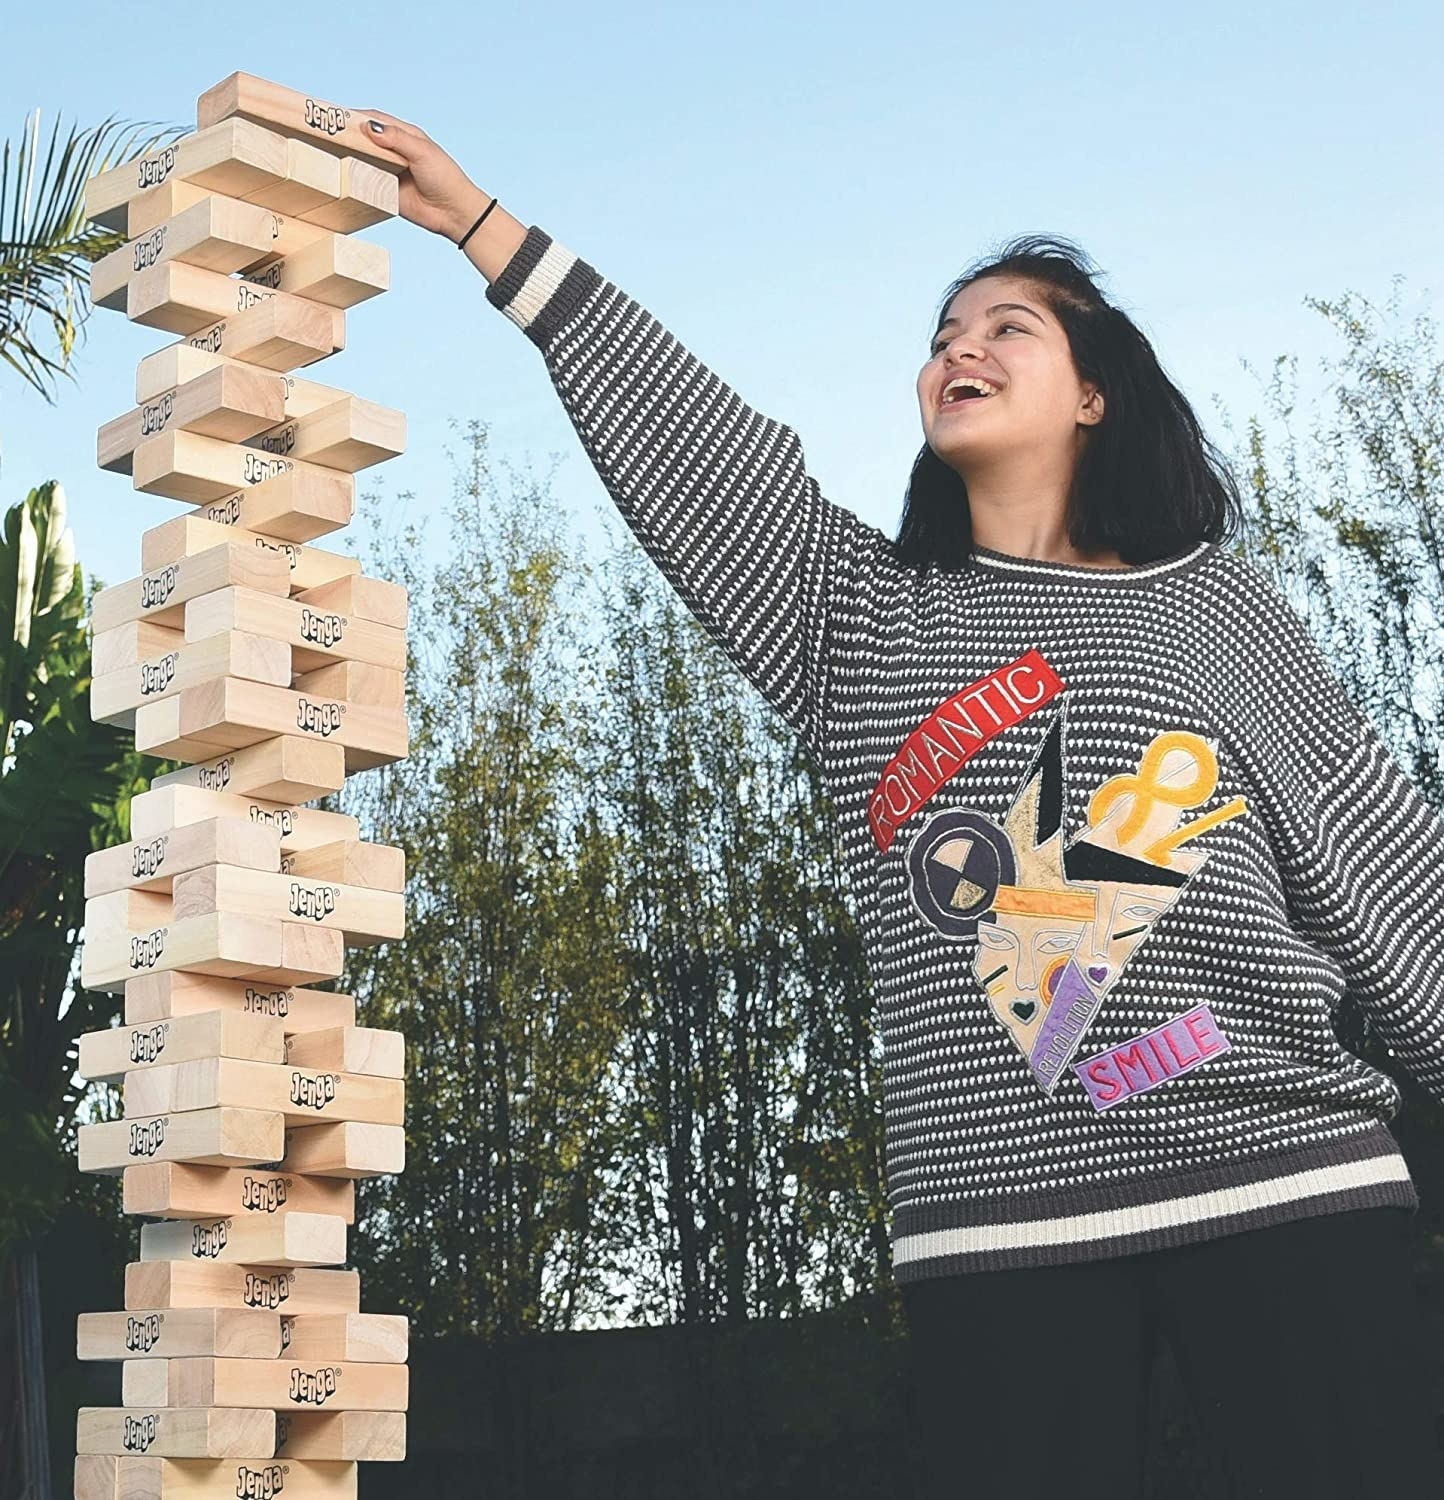 A teenager taking a block off of the Jenga tower